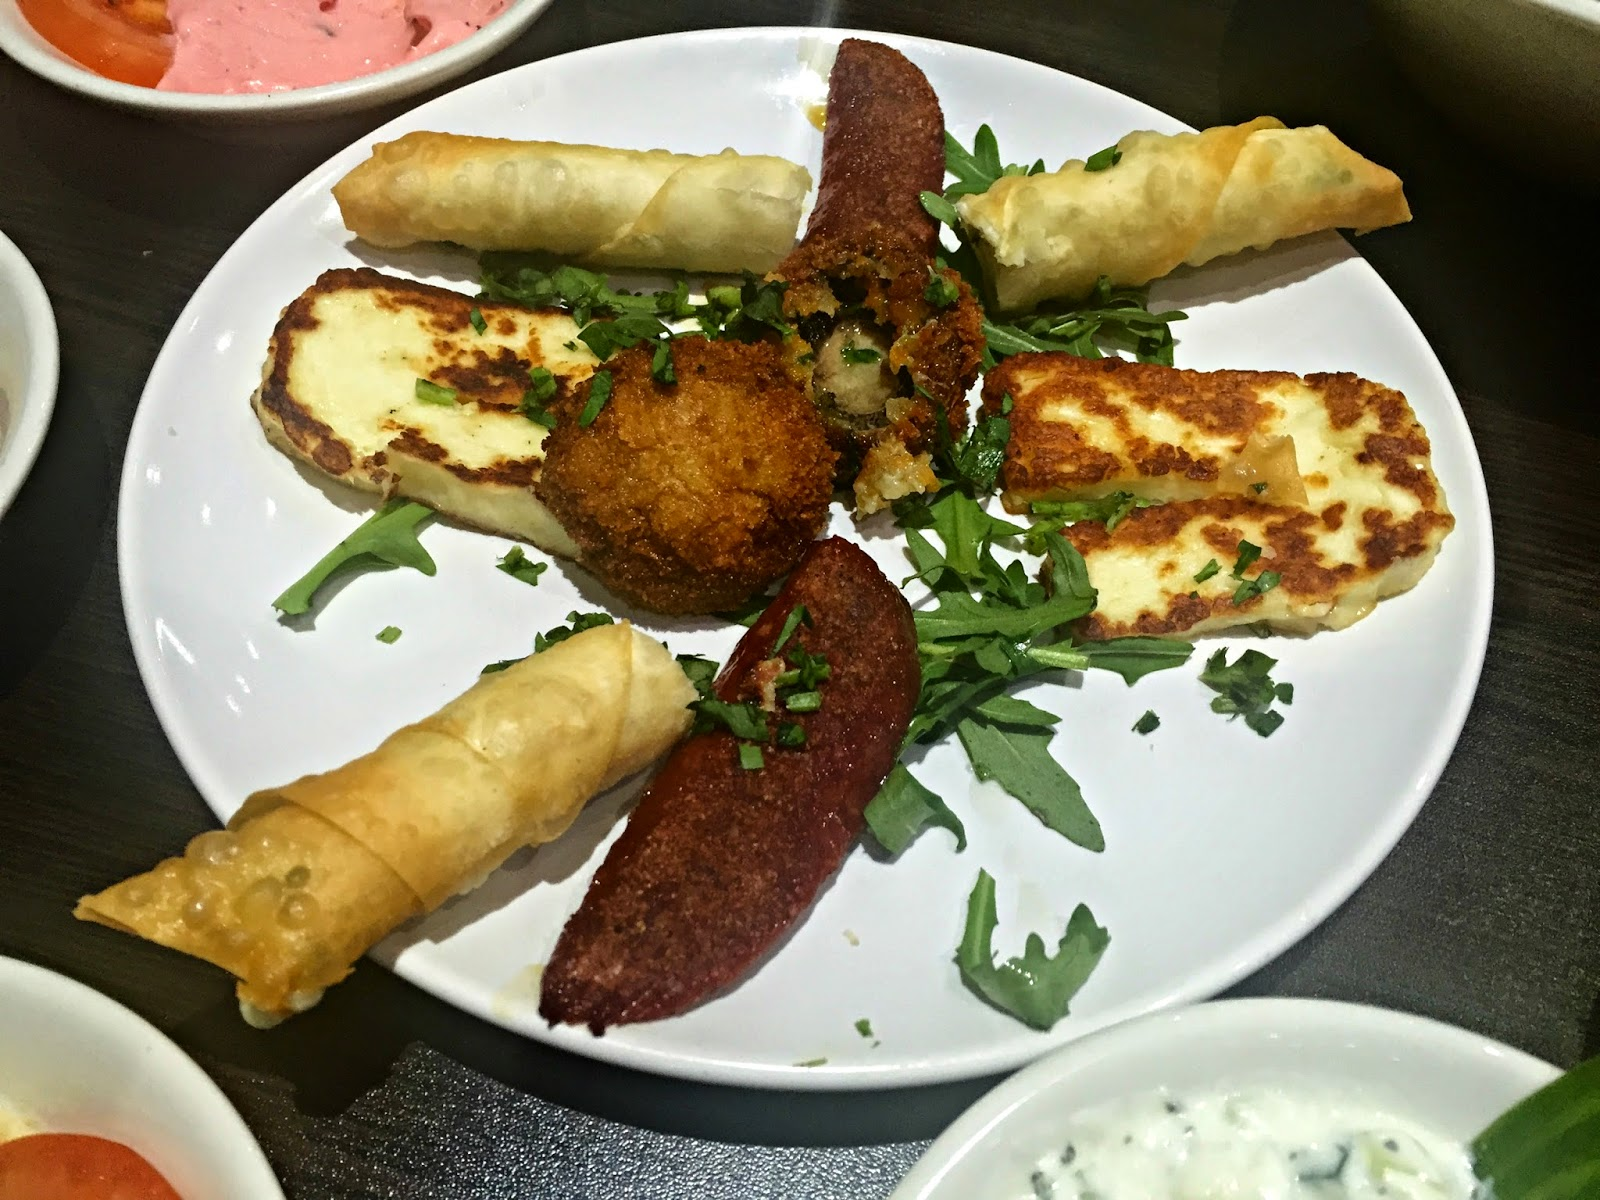 Plate of starters with halloumi cheese